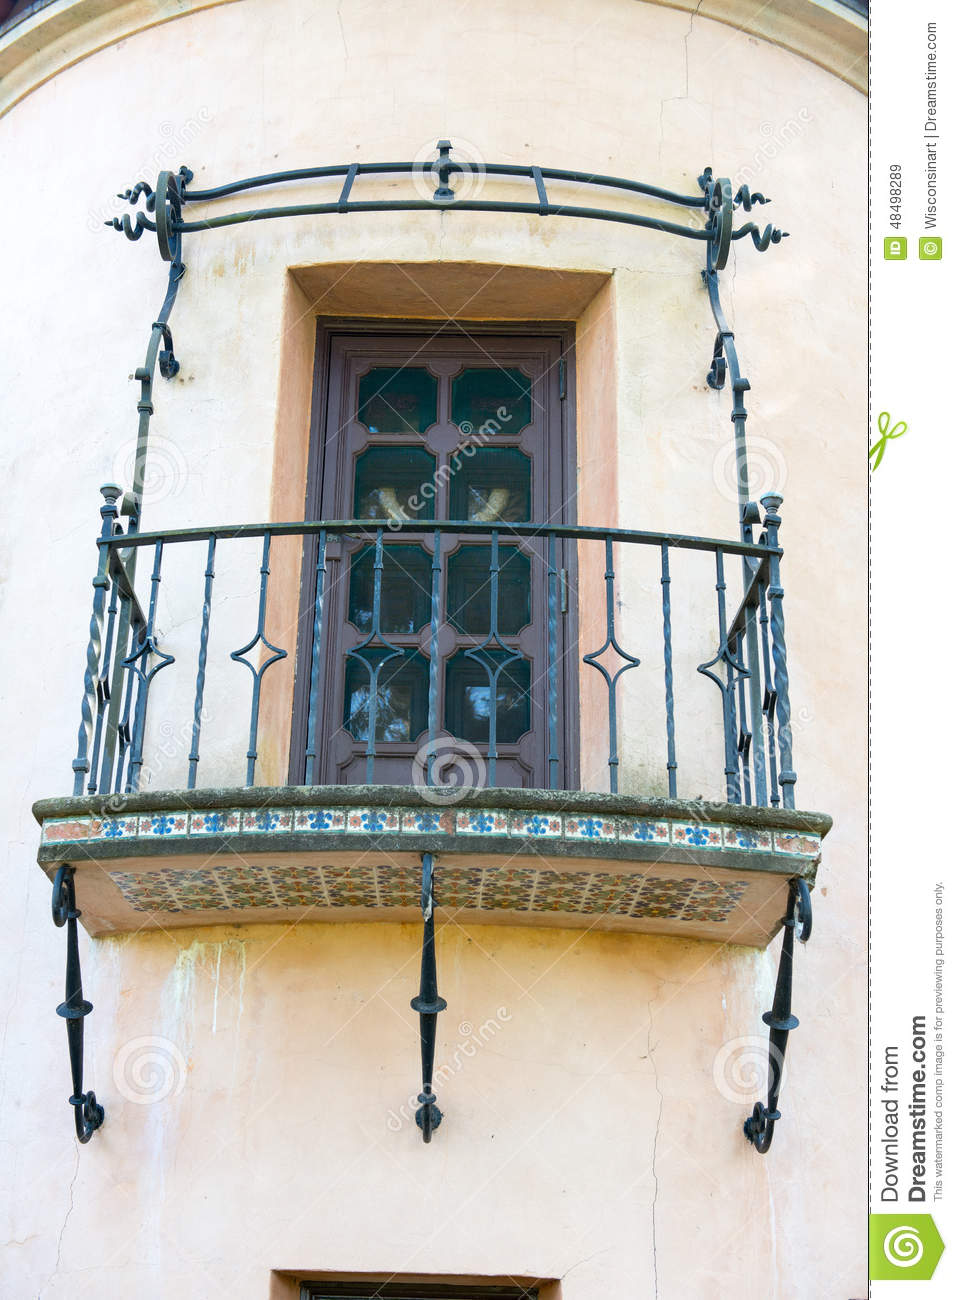 Spanish style architecture house balcony stock photo for Balcony in spanish